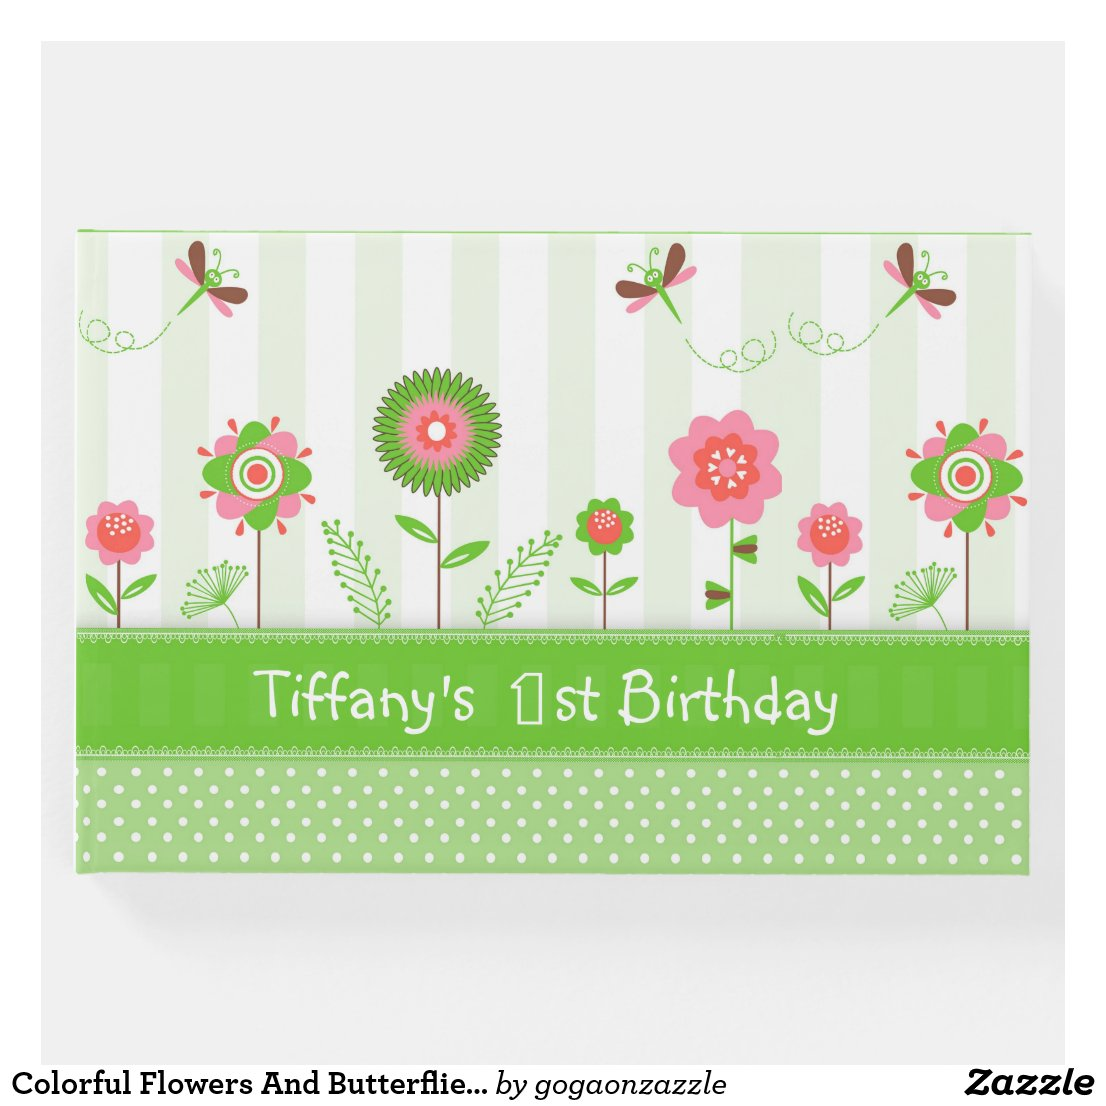 Colorful Flowers And Butterflies- Birthday